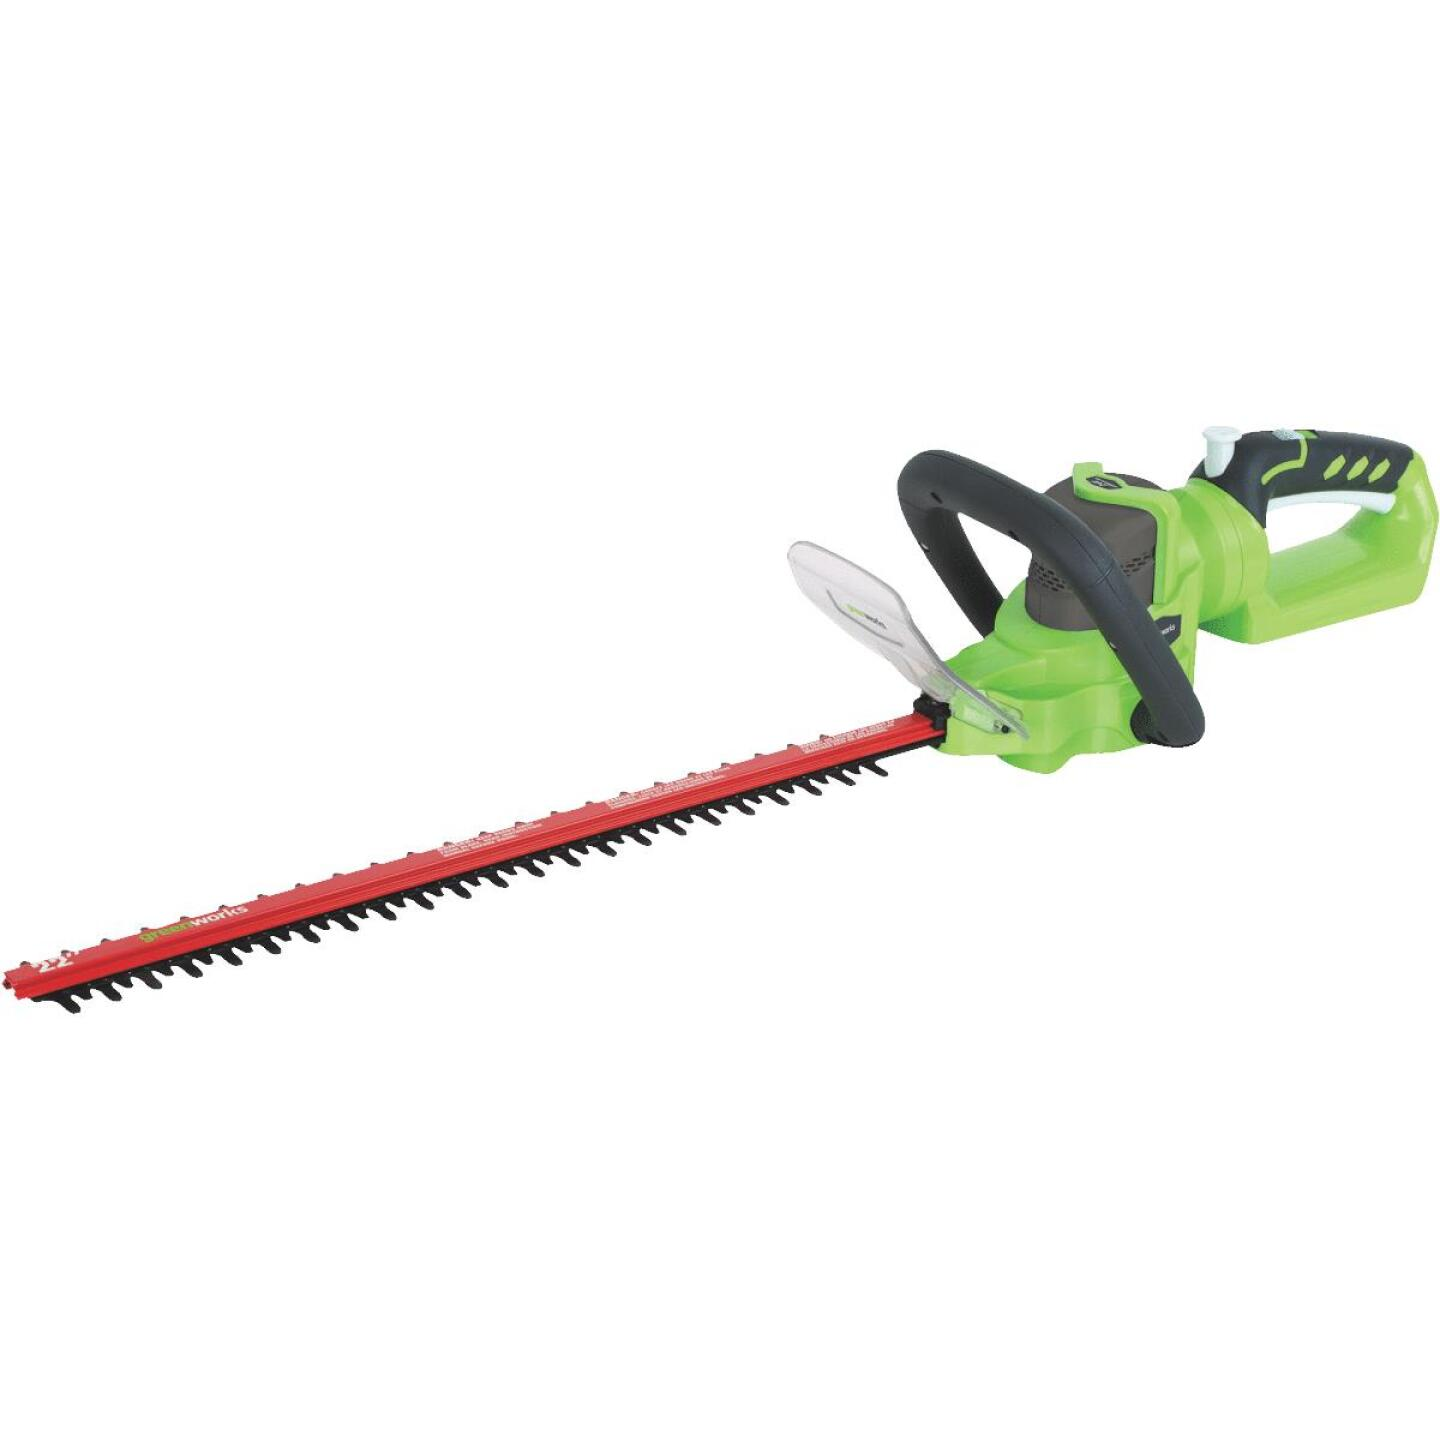 Greenworks G-Max 24 In. 40V Lithium Ion Cordless Hedge Trimmer (Bare Tool) Image 1